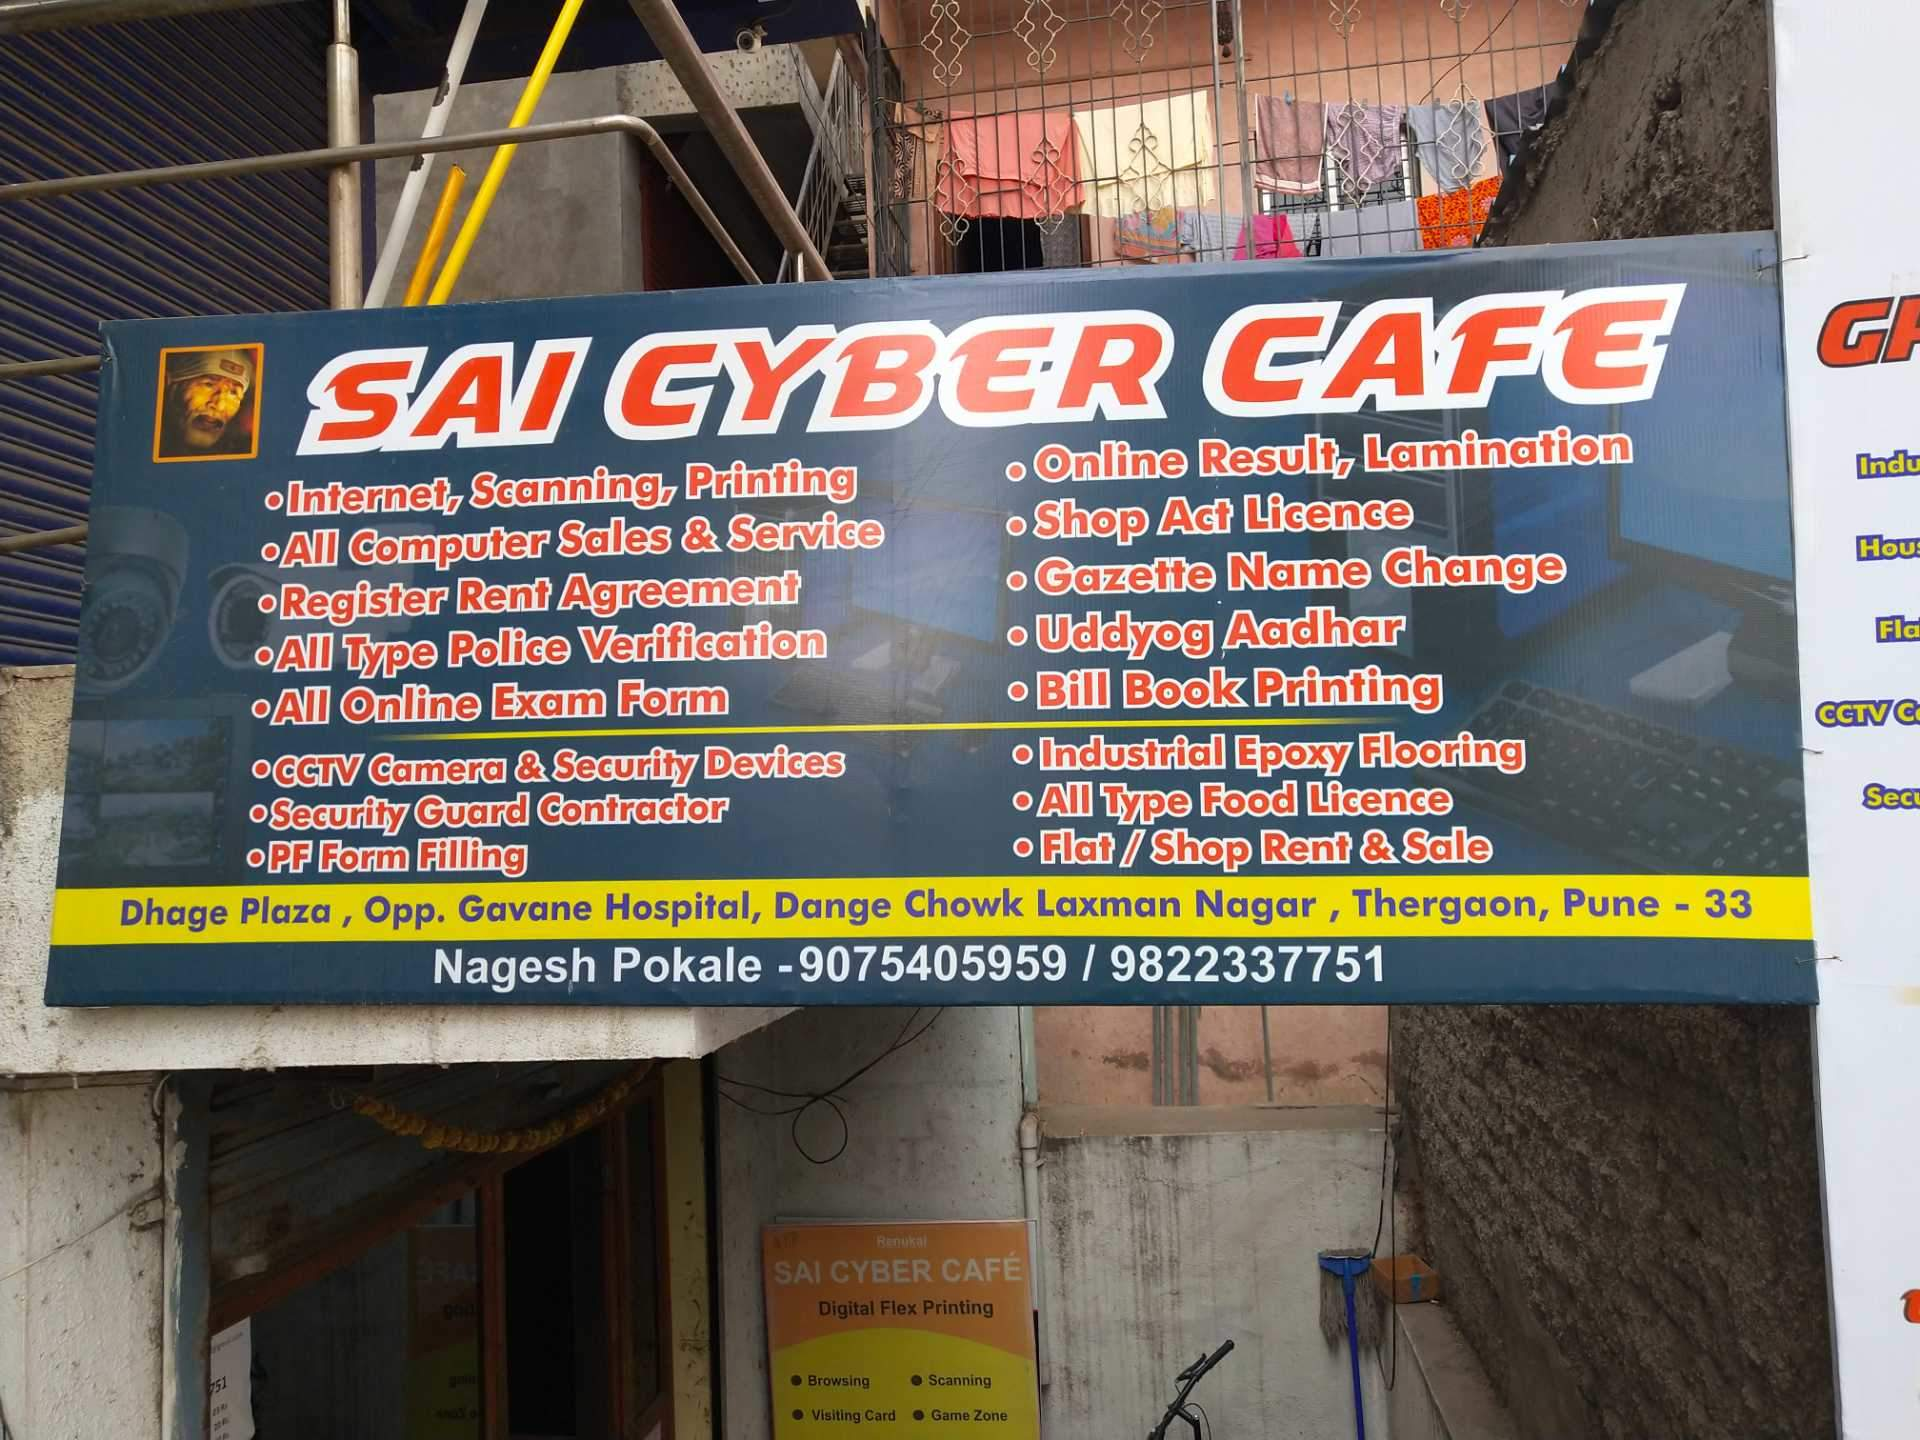 Top 50 24 Hours Cyber Cafe in Pune - Best 24 Hours Internet Cafe